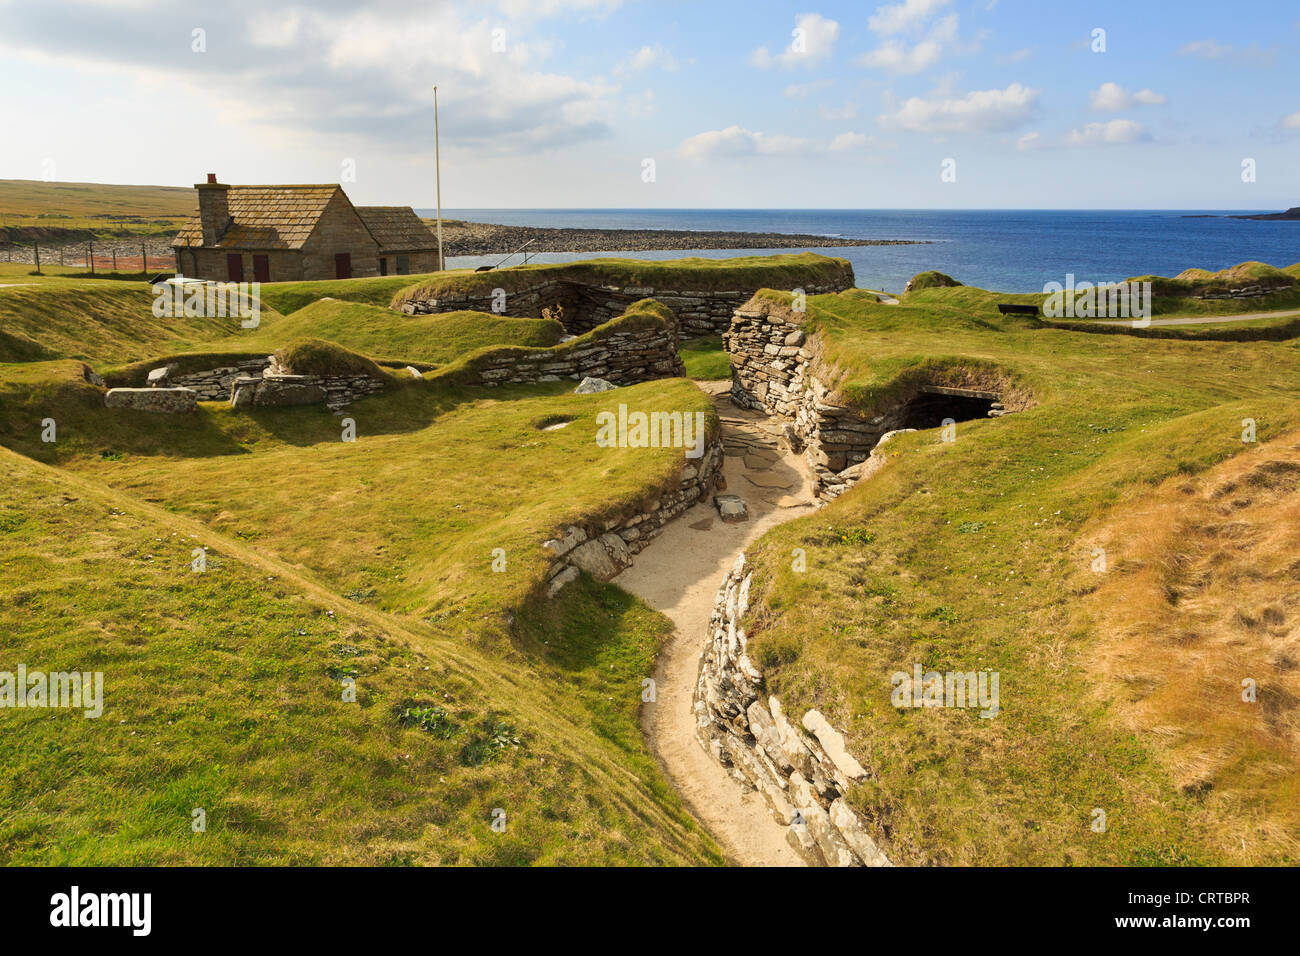 Excavations of tunnel between prehistoric houses in Neolithic village at Skara Brae by Bay of Skaill Orkney Islands - Stock Image